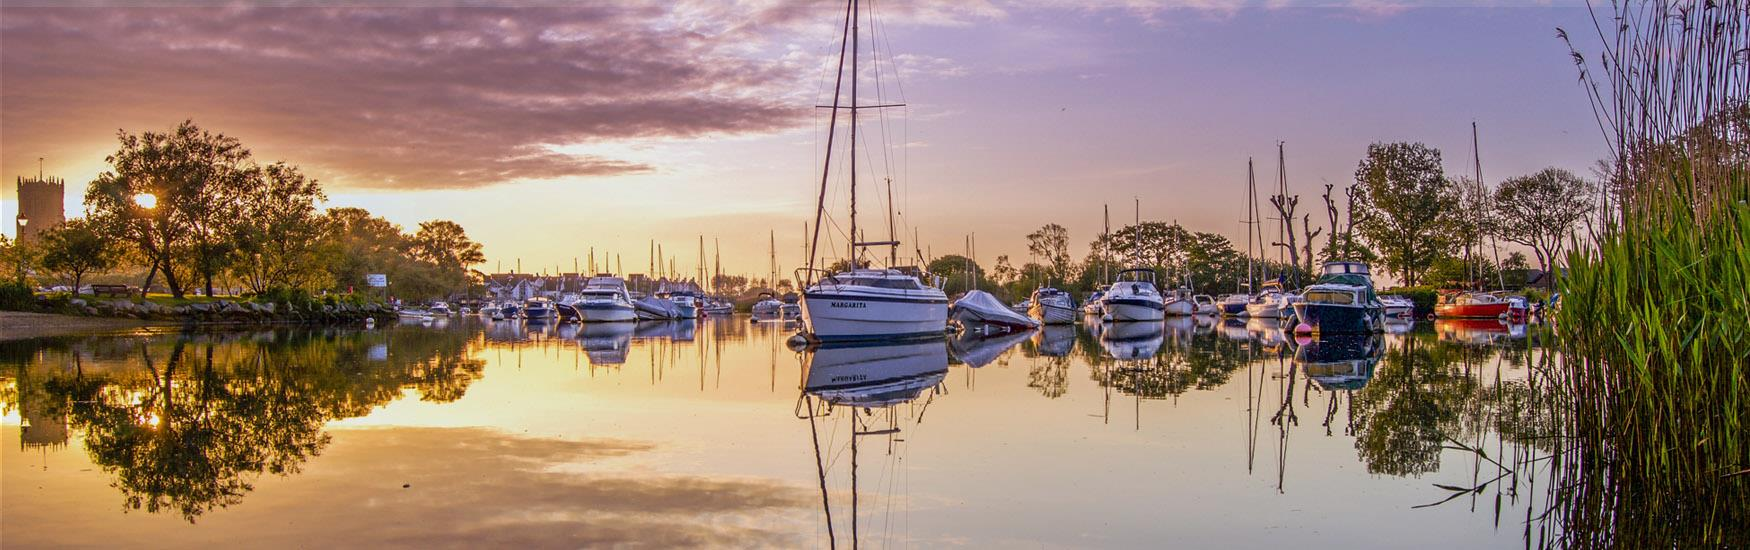 Sunset image of boats on Christchurch quay with the priory church in the distance